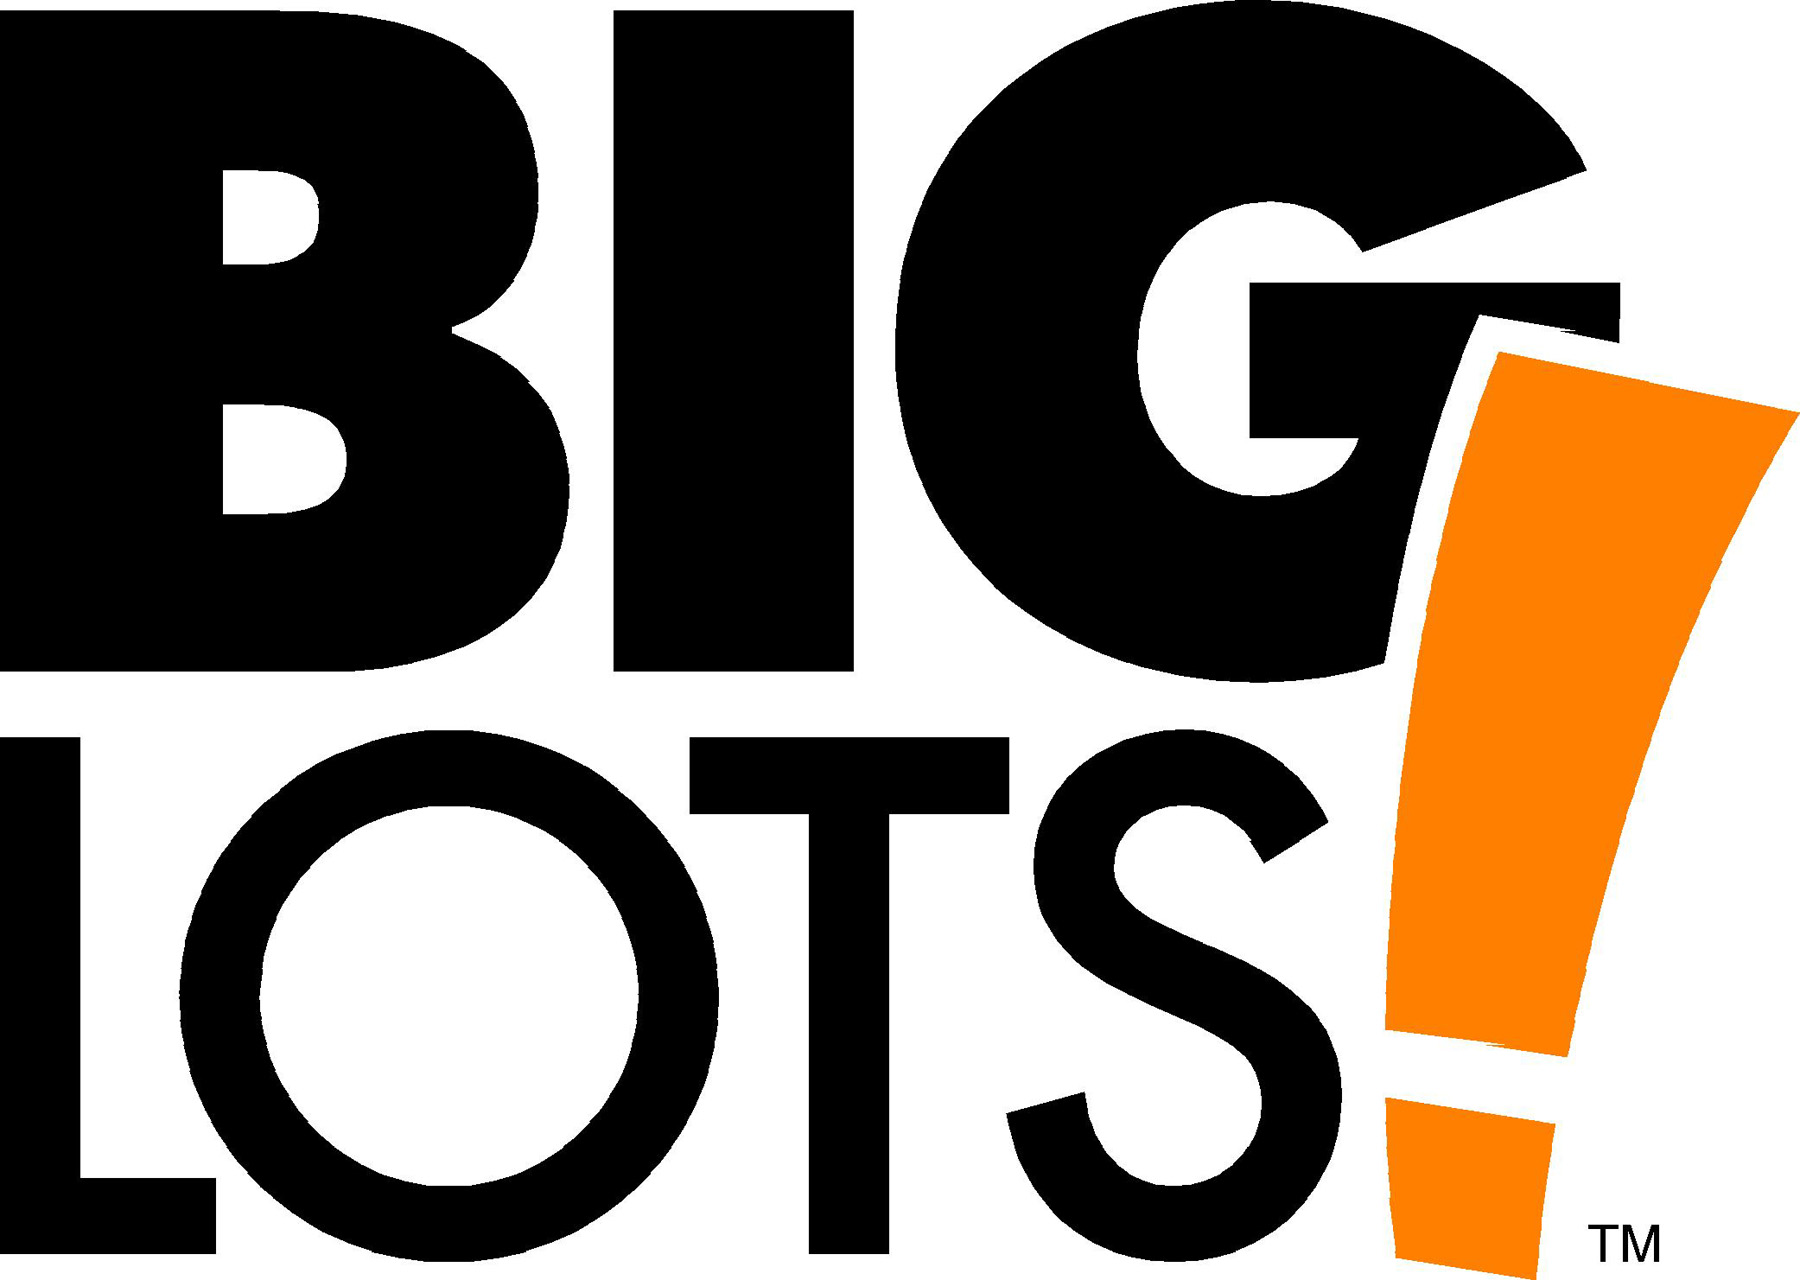 Big Lots To Celebrate The Grand Opening Of 11 Stores Across Kentucky Sept 13 Lane Report Kentucky Business Economic News